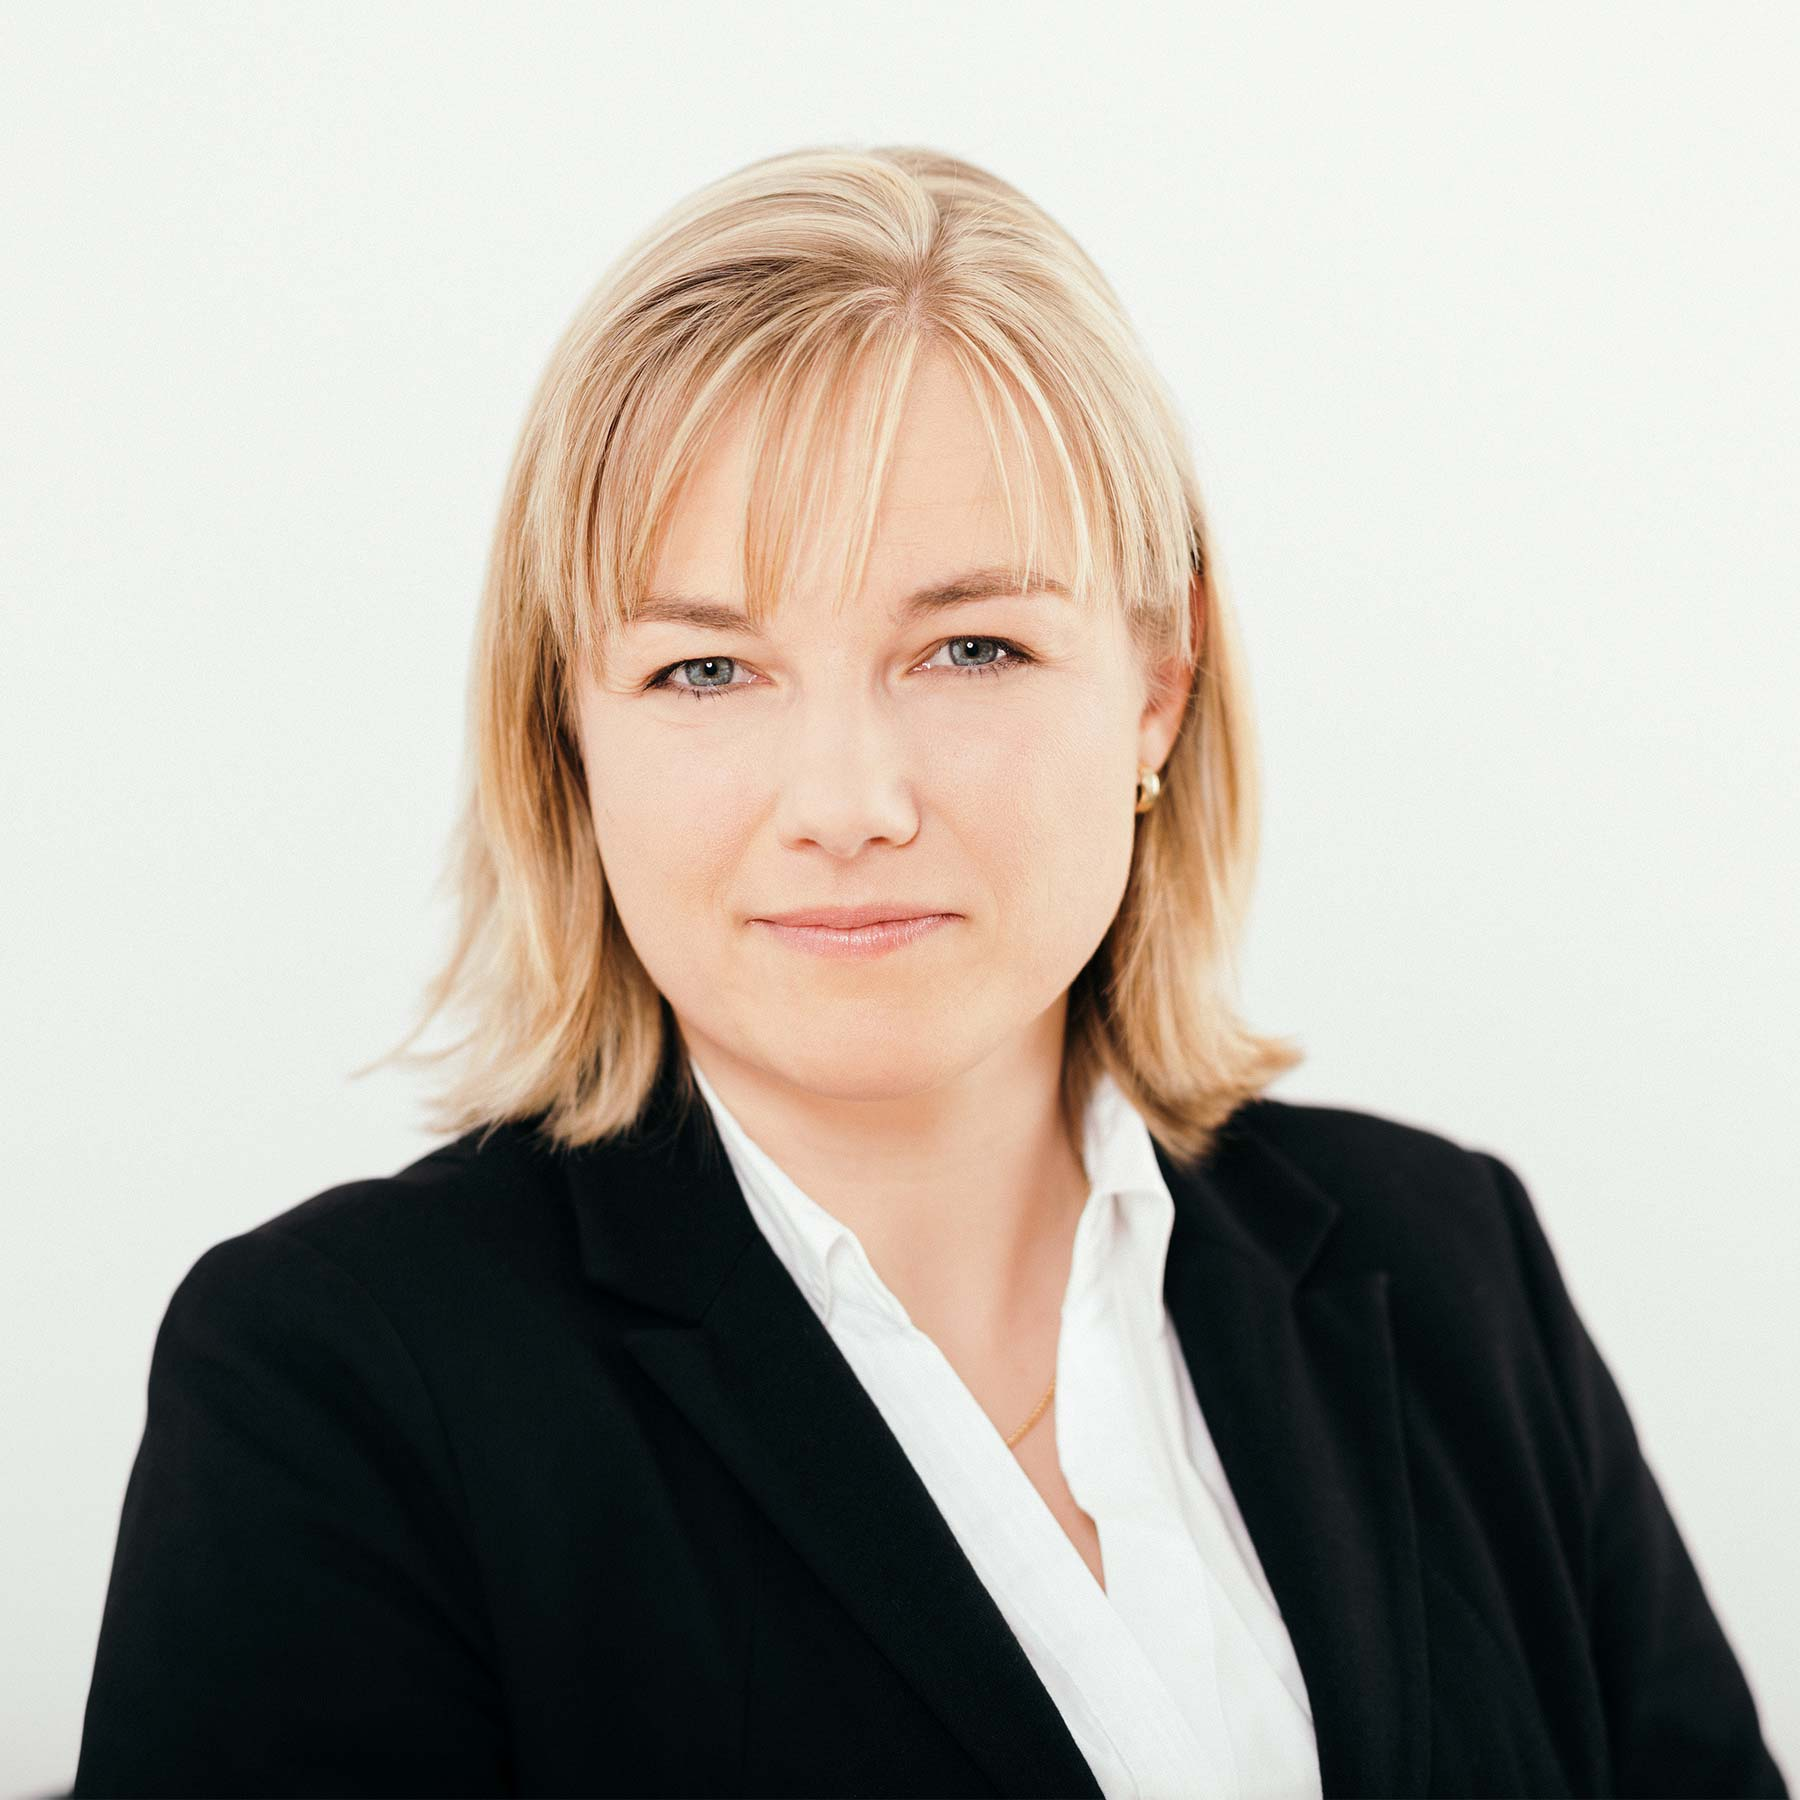 Dr. Caterina Wehage